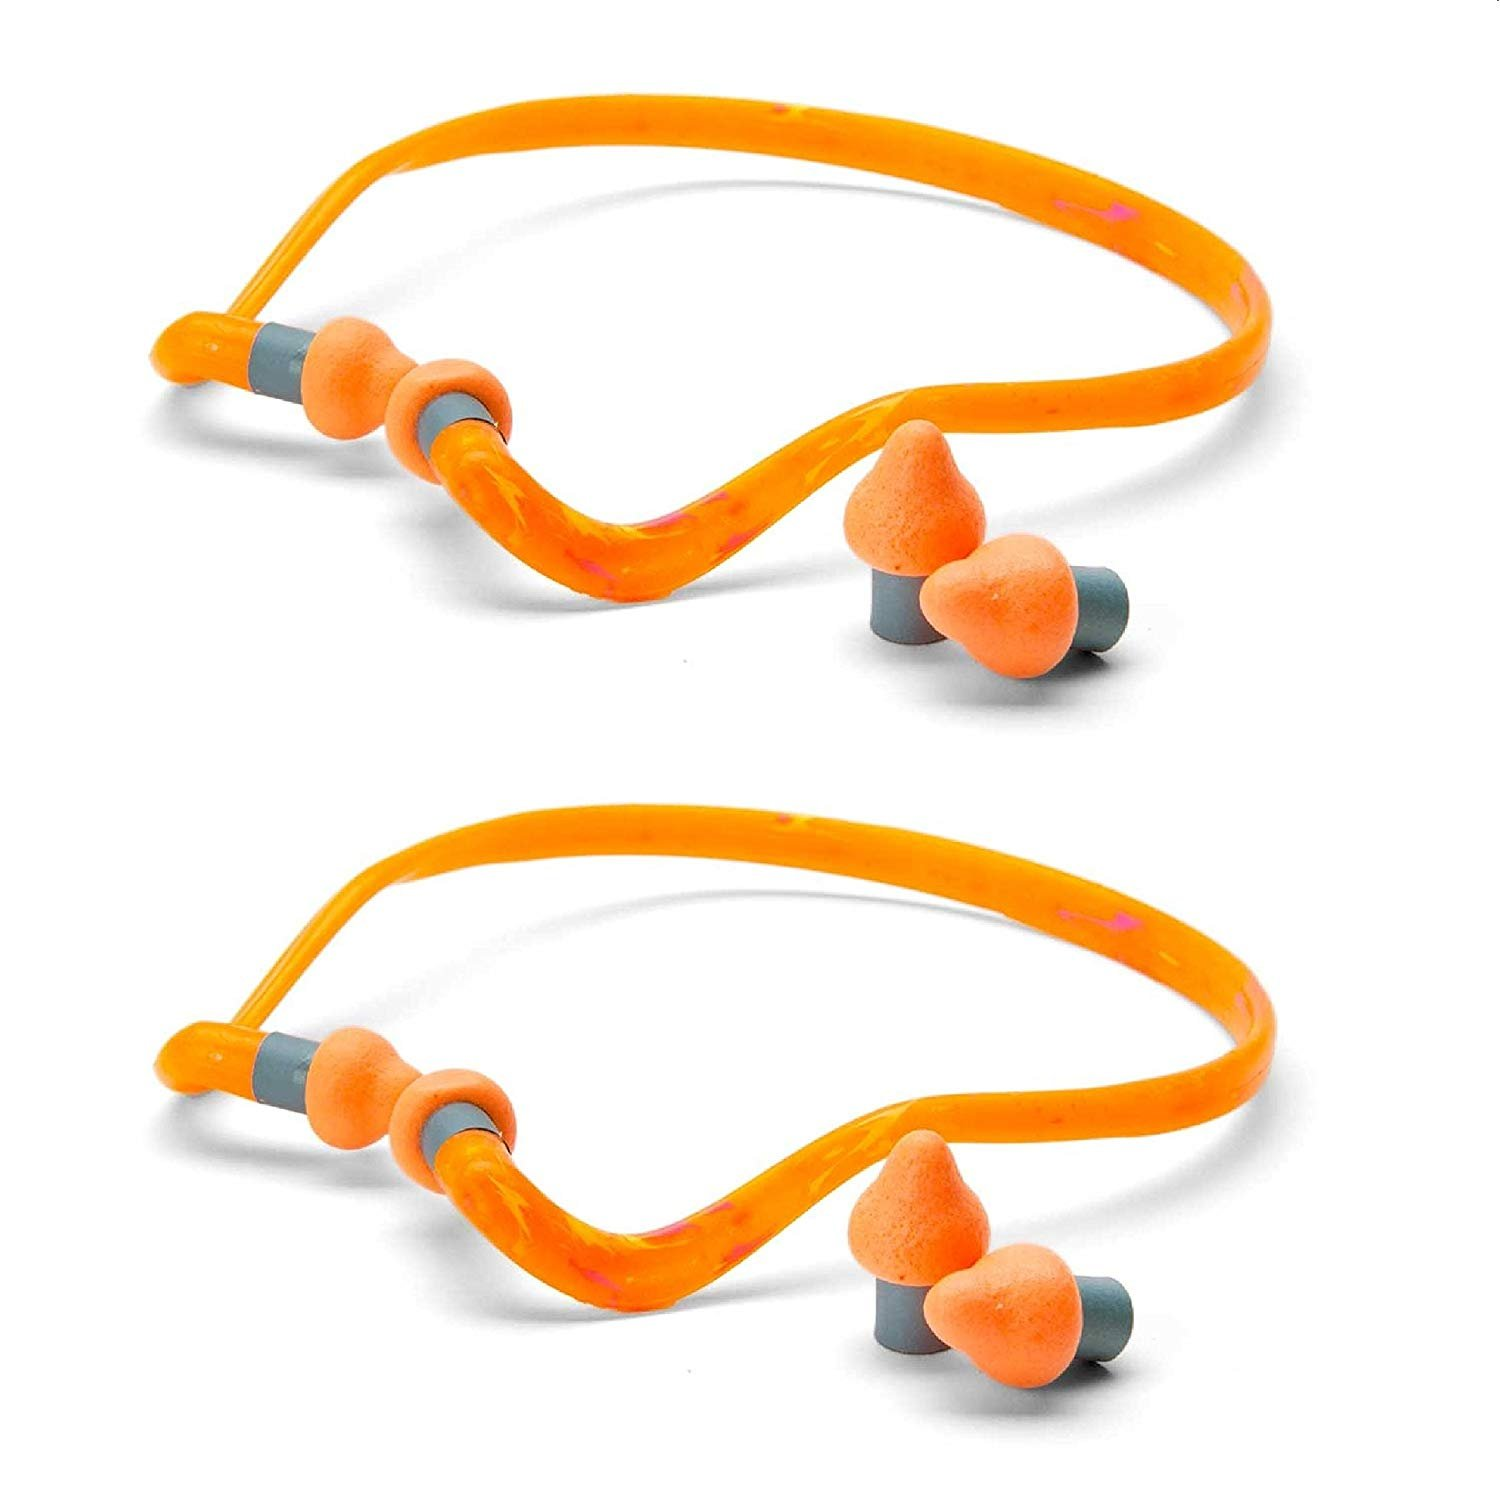 QB2HYG® Hearing Bands - quiet bands banded supra-aural